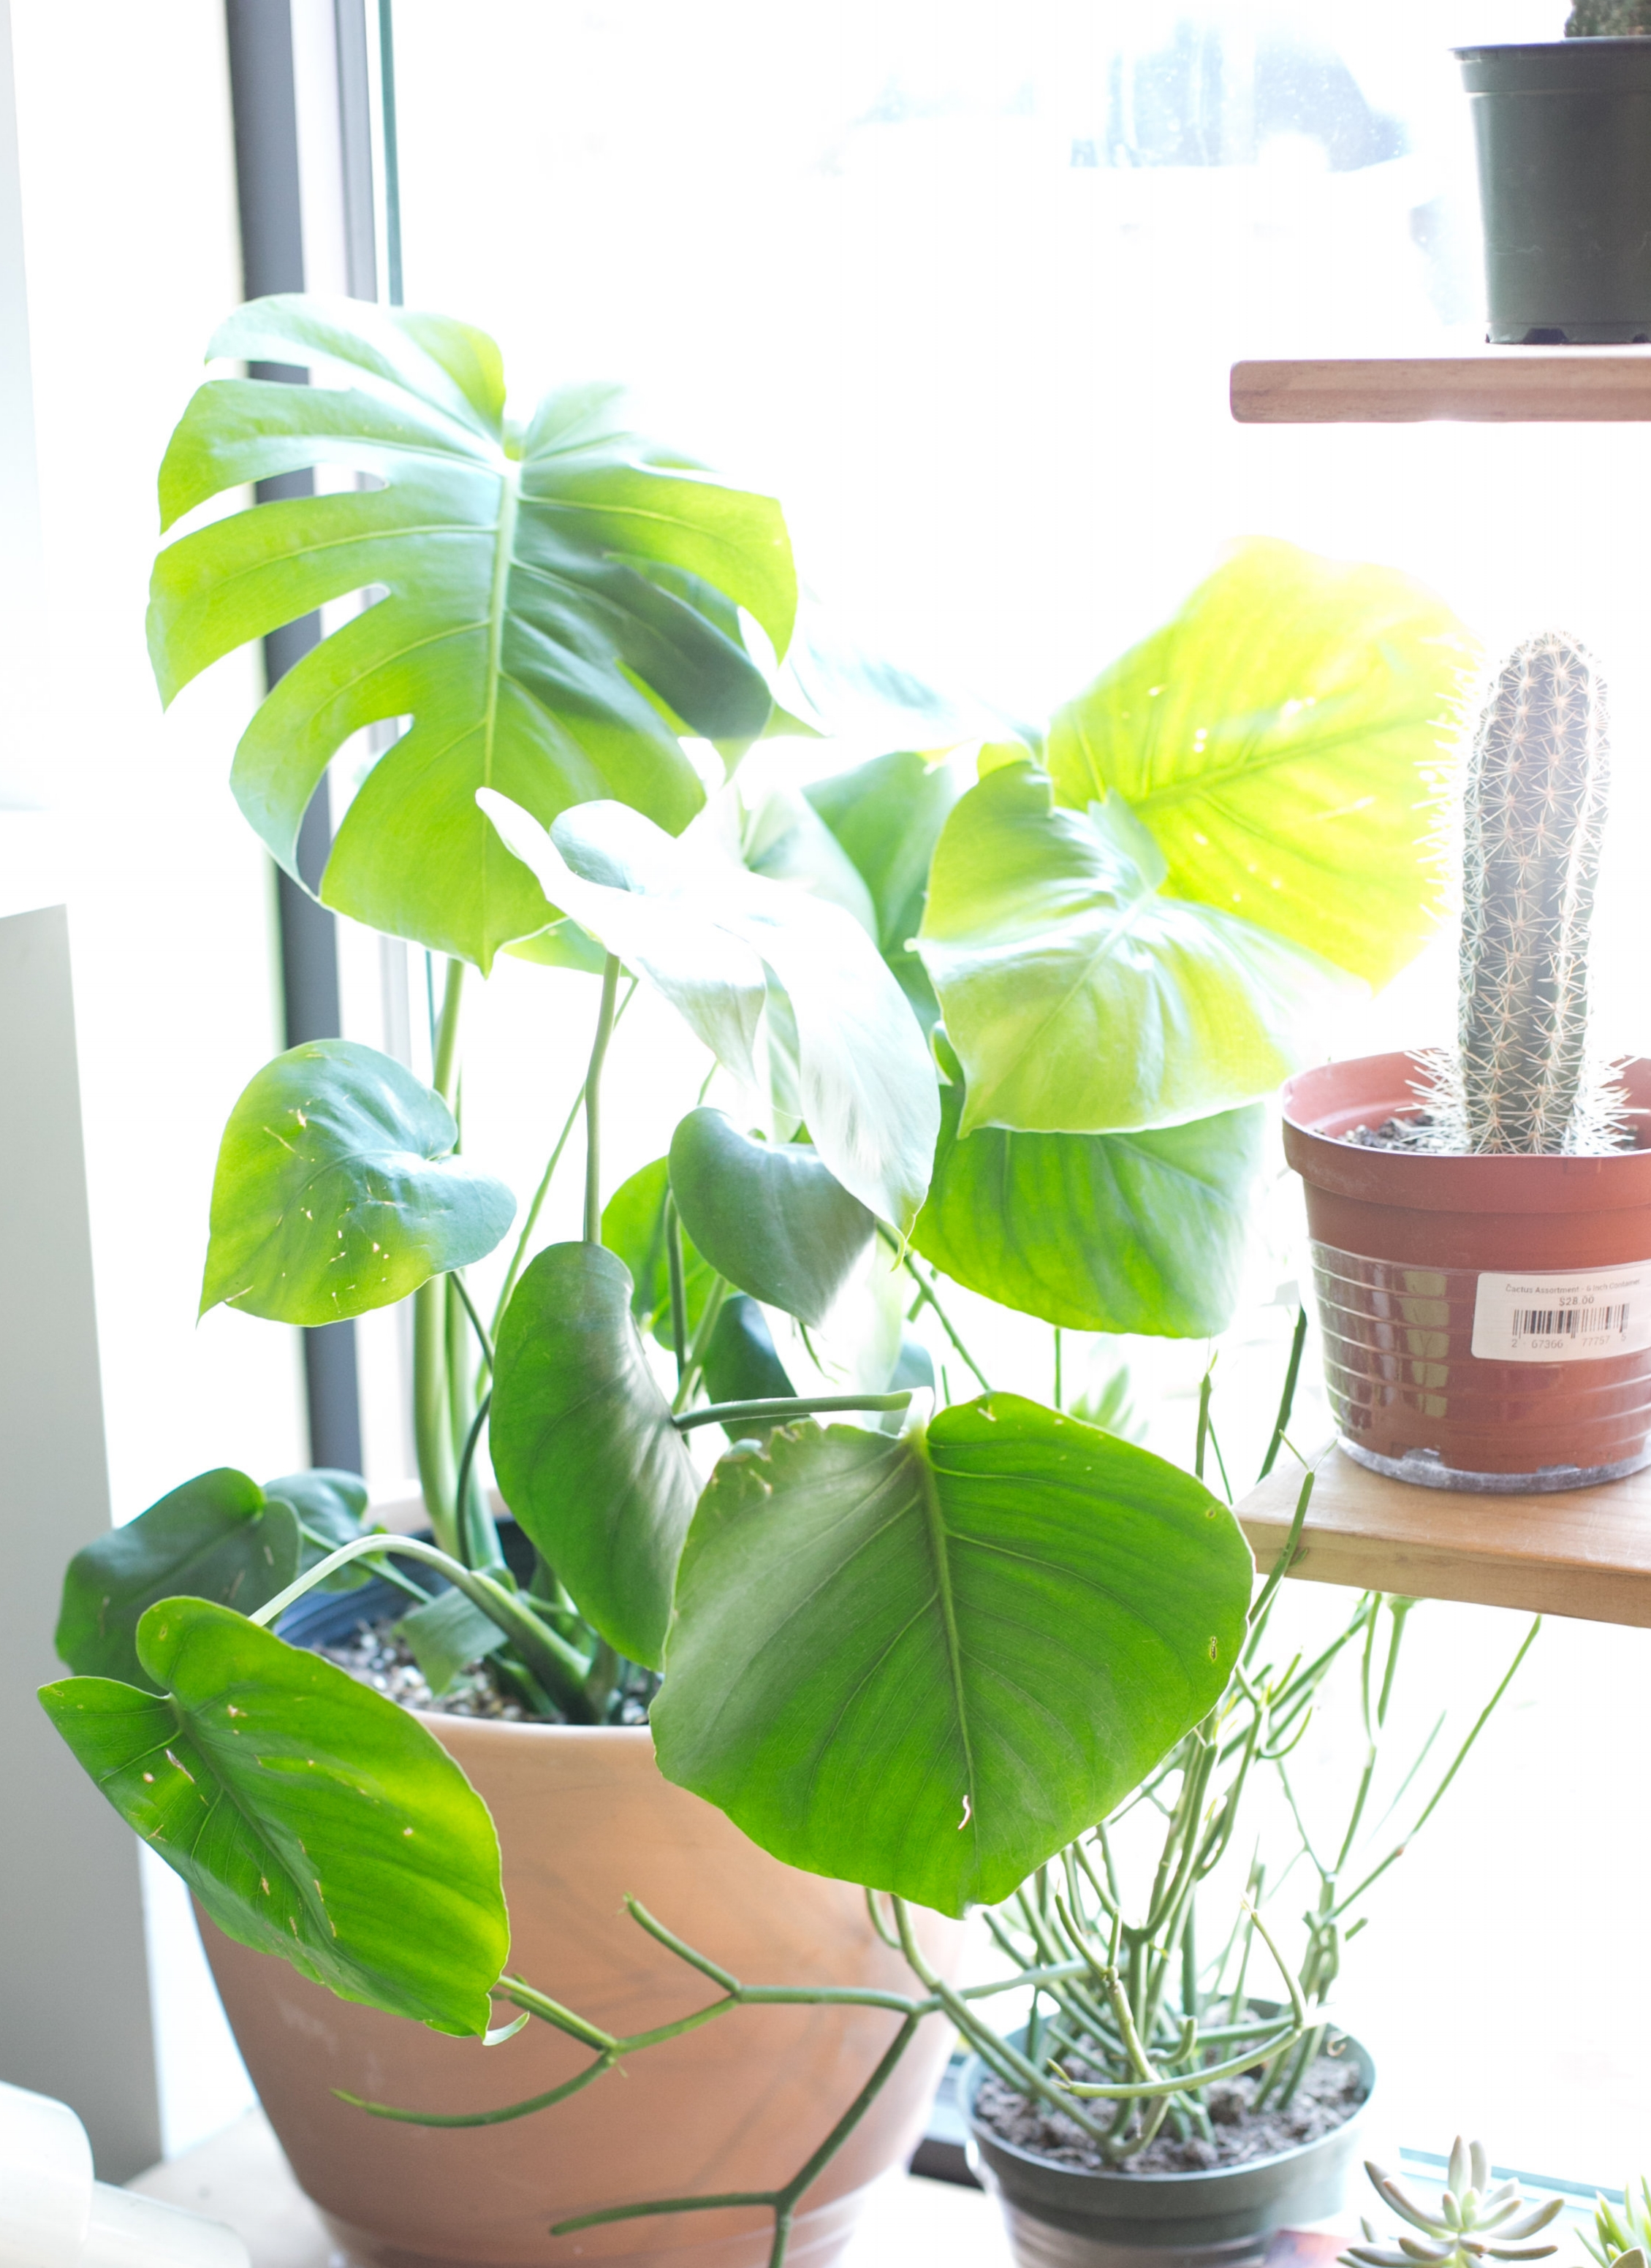 Let the sun shine! Many plants enjoy some direct sunlight, preferably in the morning.